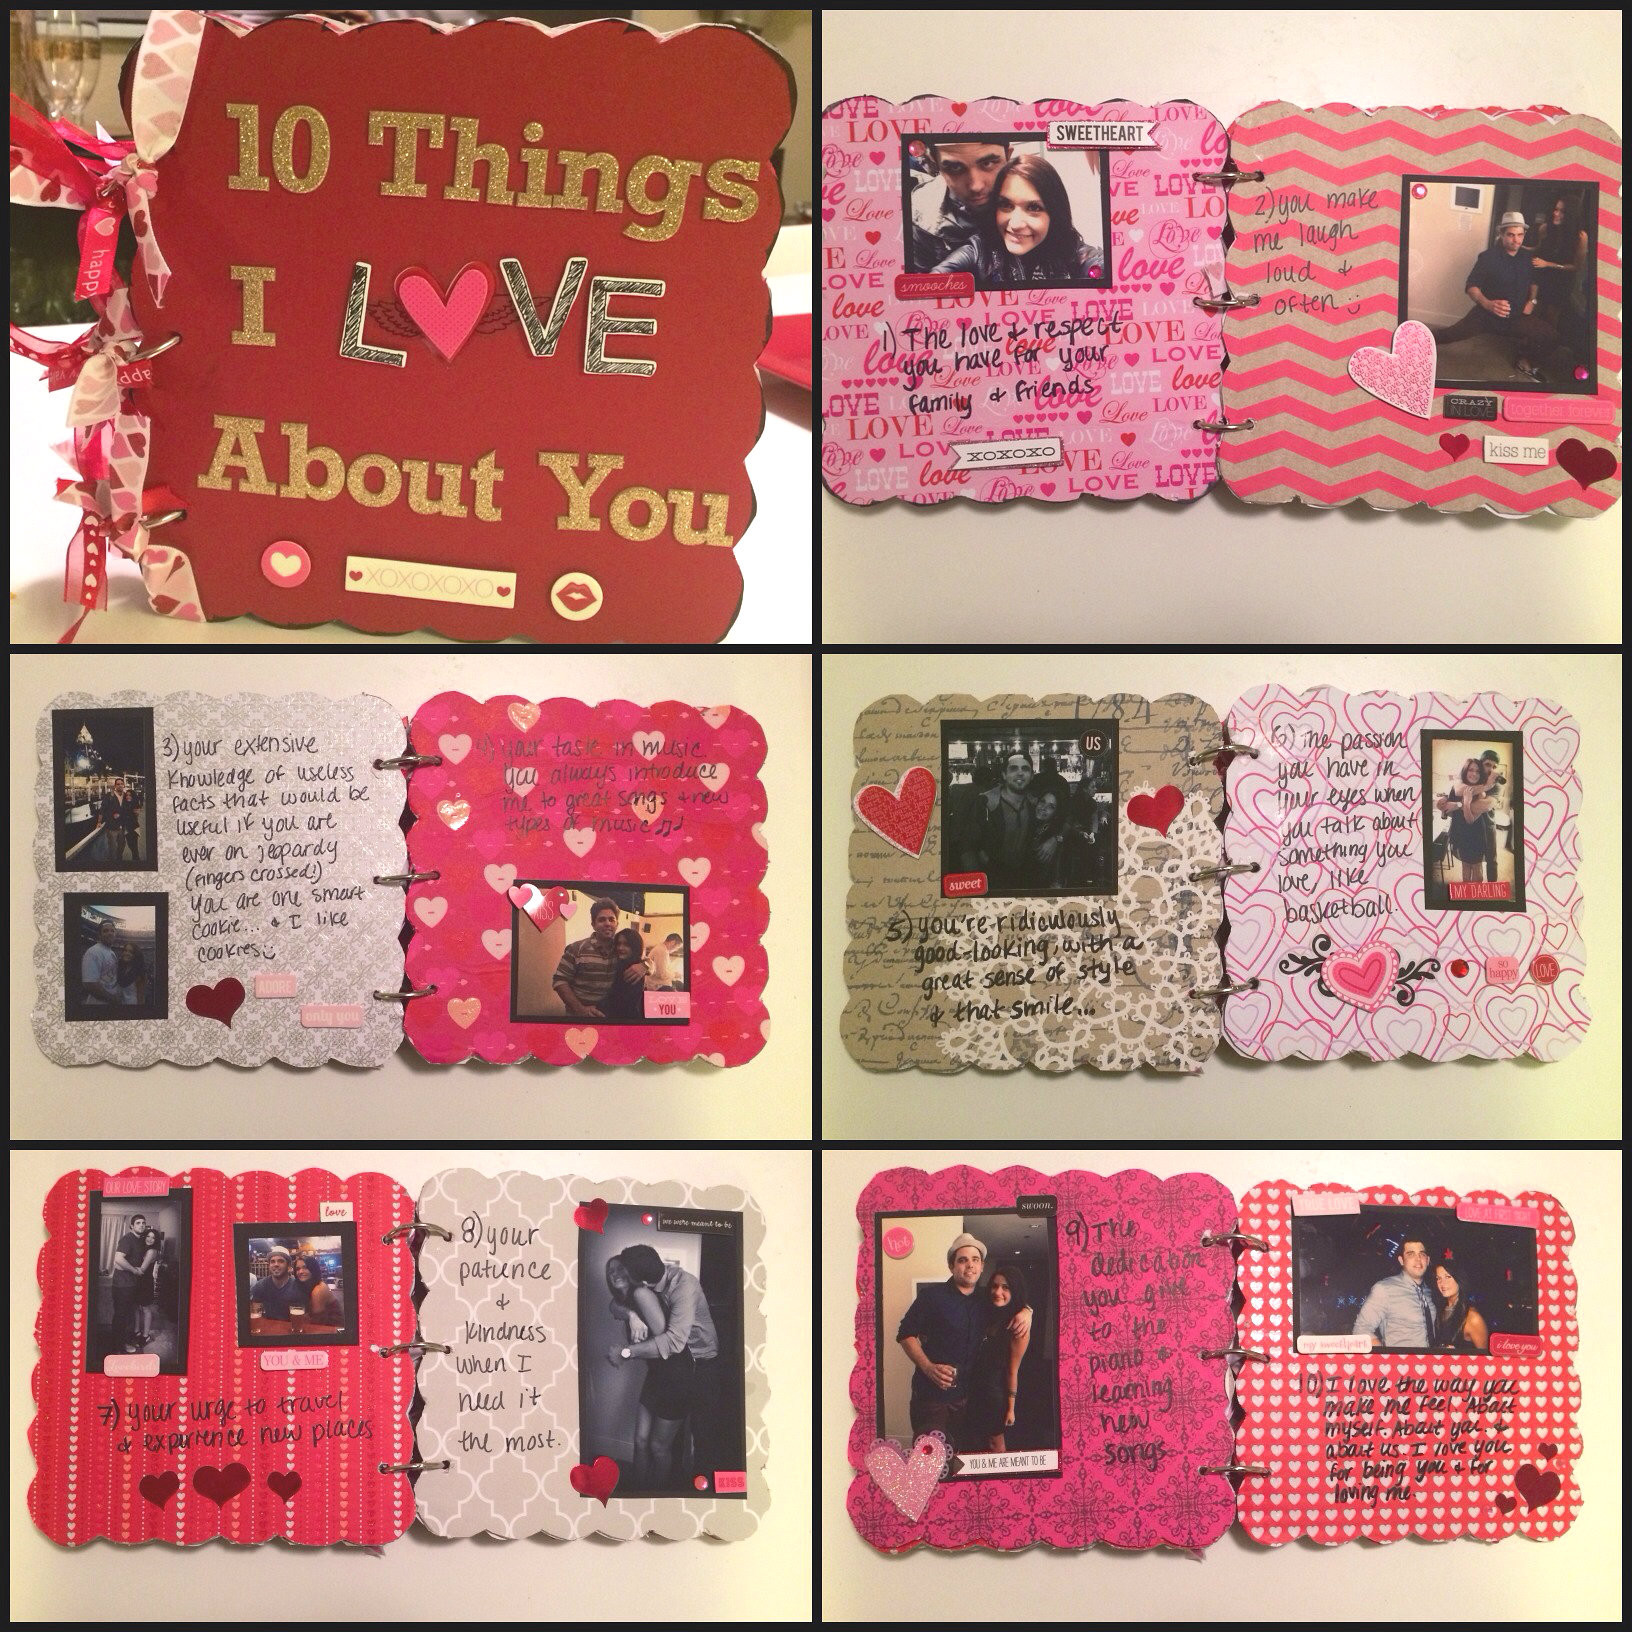 Best ideas about Unique Gift Ideas For Boyfriend . Save or Pin 2014 valentine ts for boyfriend creative ideas Now.